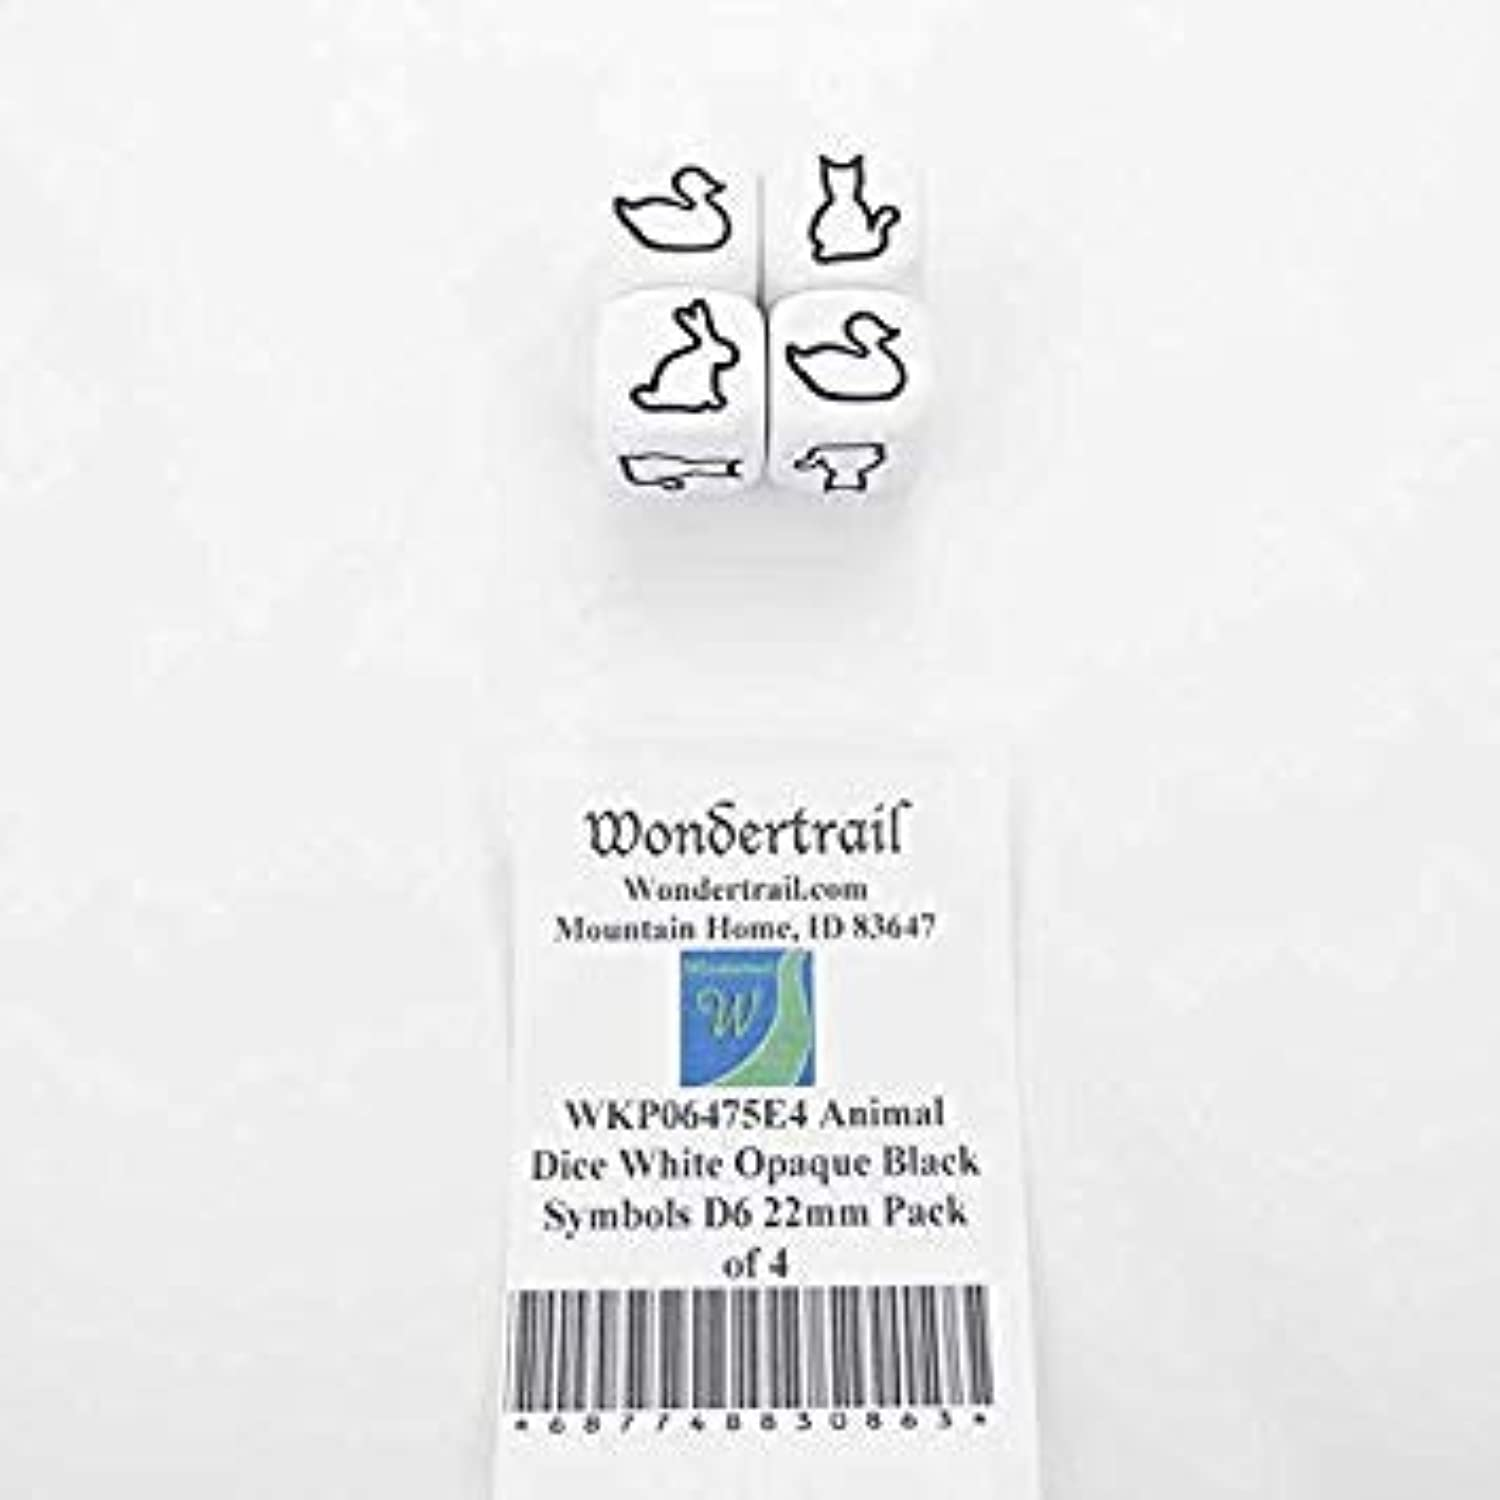 Animal Dice White Opaque Dice with Black Symbols D6 22mm (7 8in) Pack of 4 Wondertrail